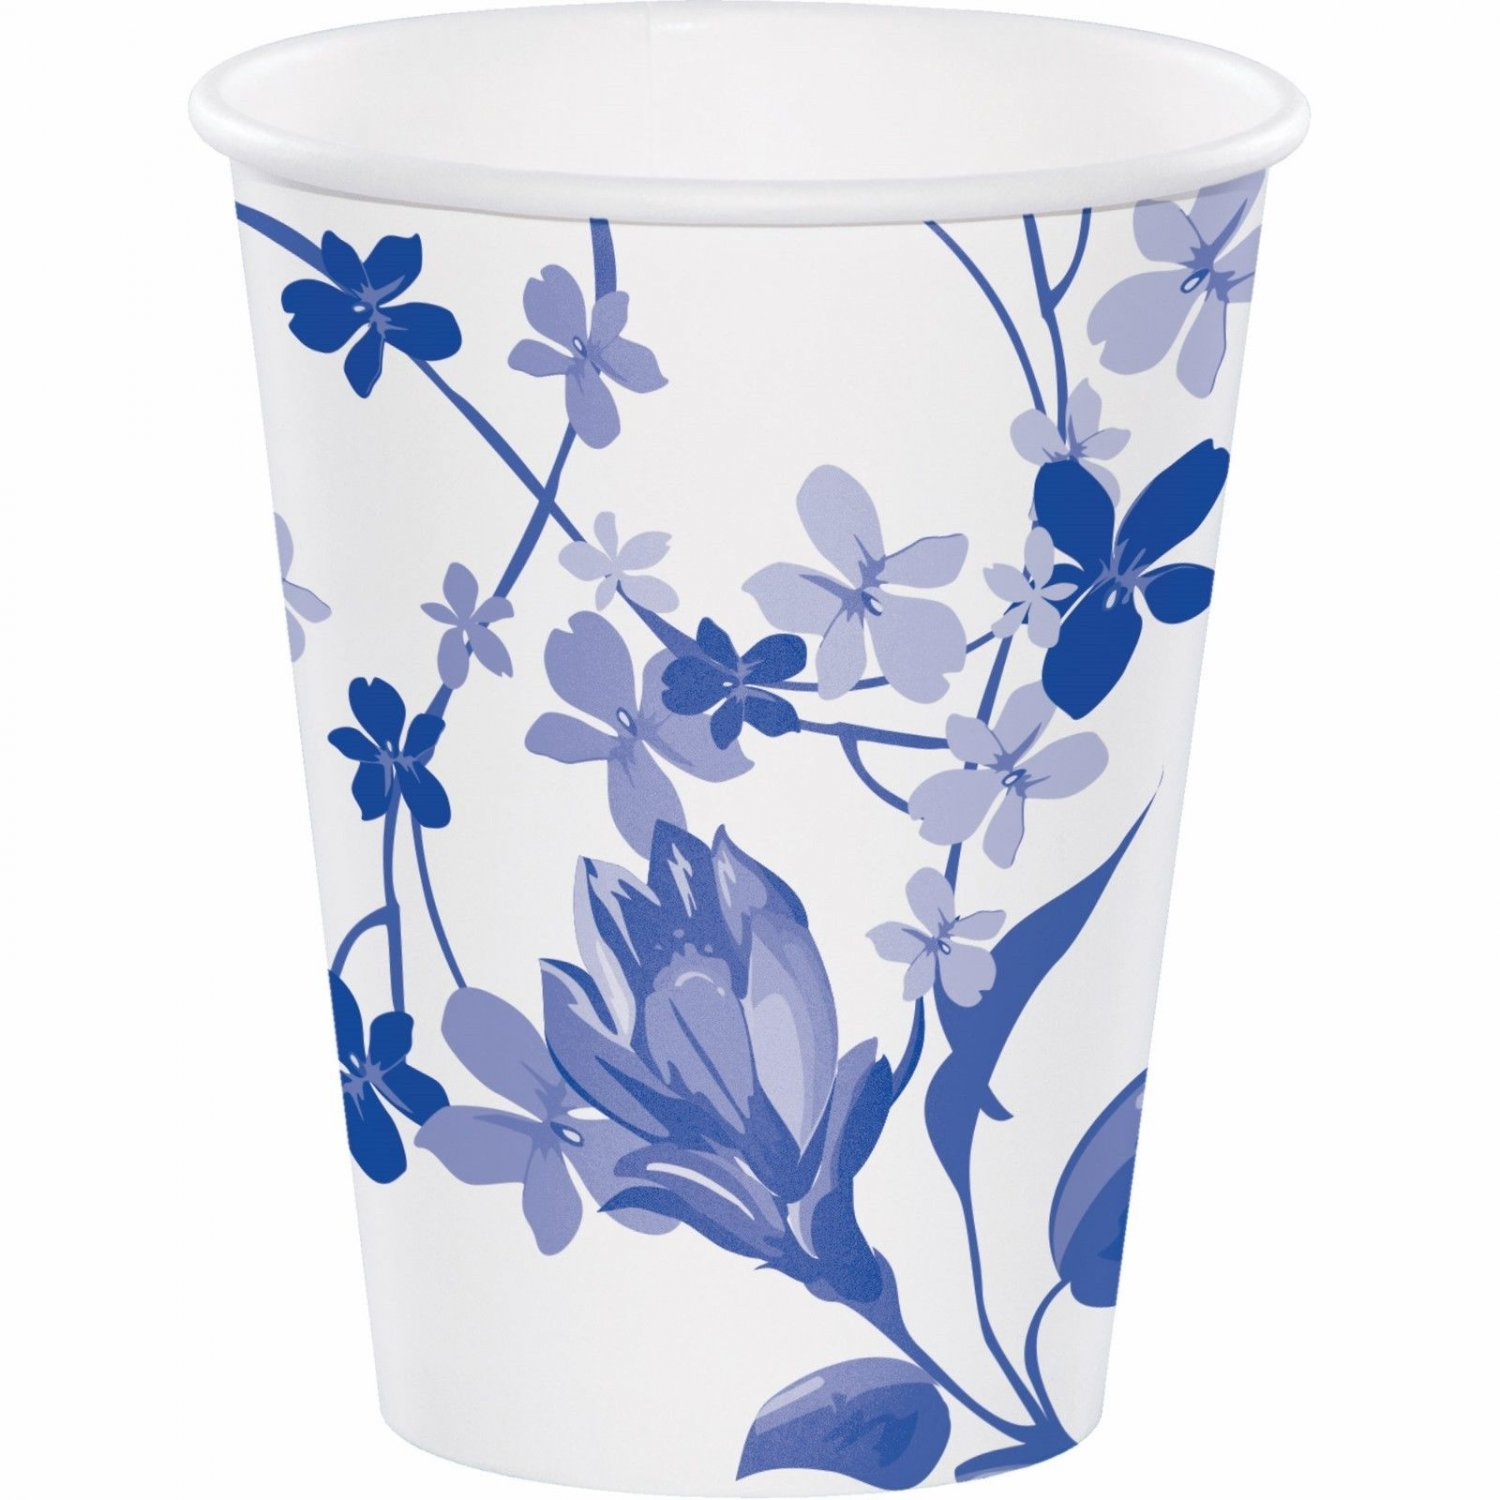 Artstyle 12-Oz. Hot or Cold Cups, 40 ct. - Blue Flower NEW In Package